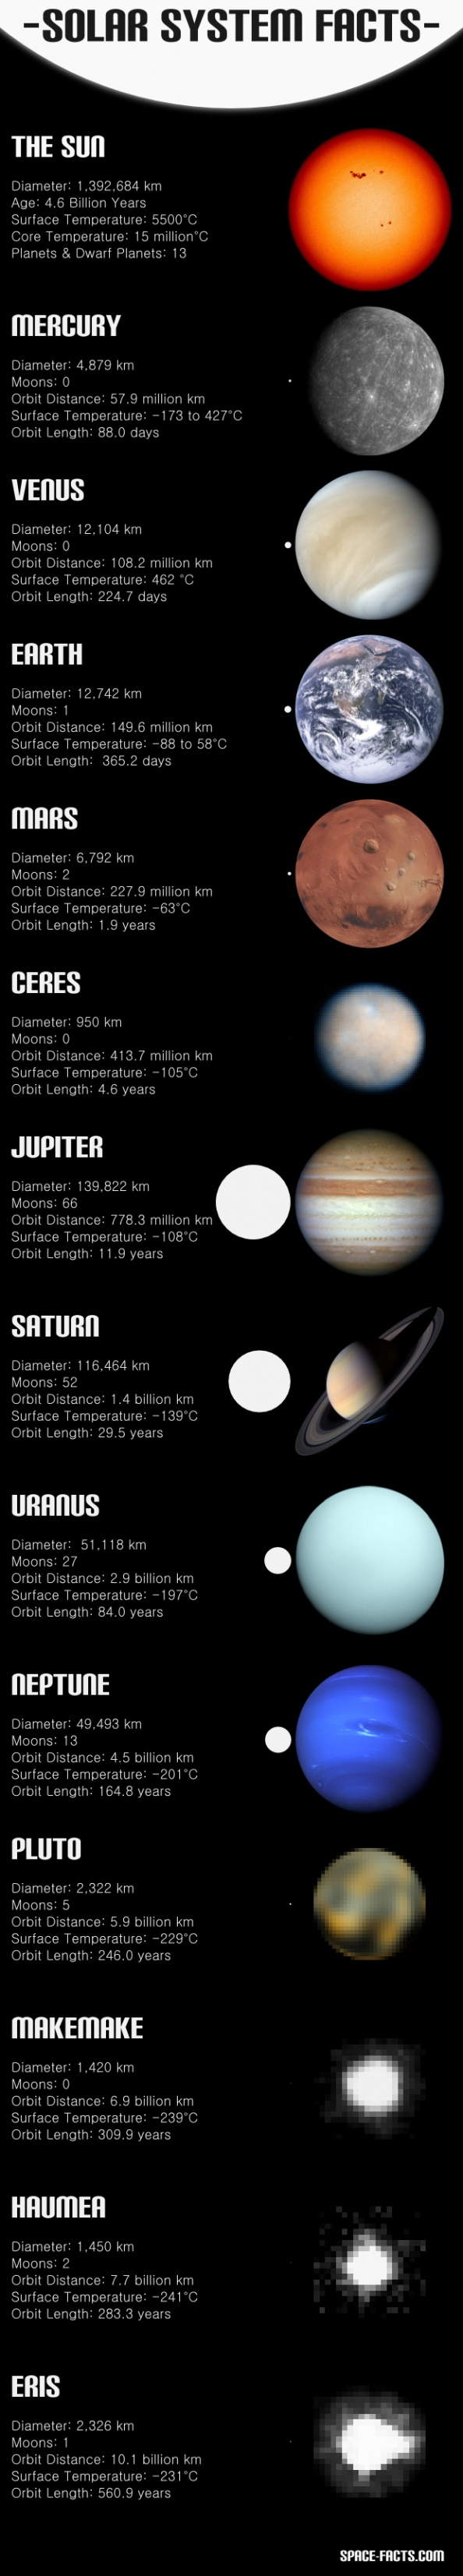 Solar System Facts - #Infographic | Infographic - Food ...